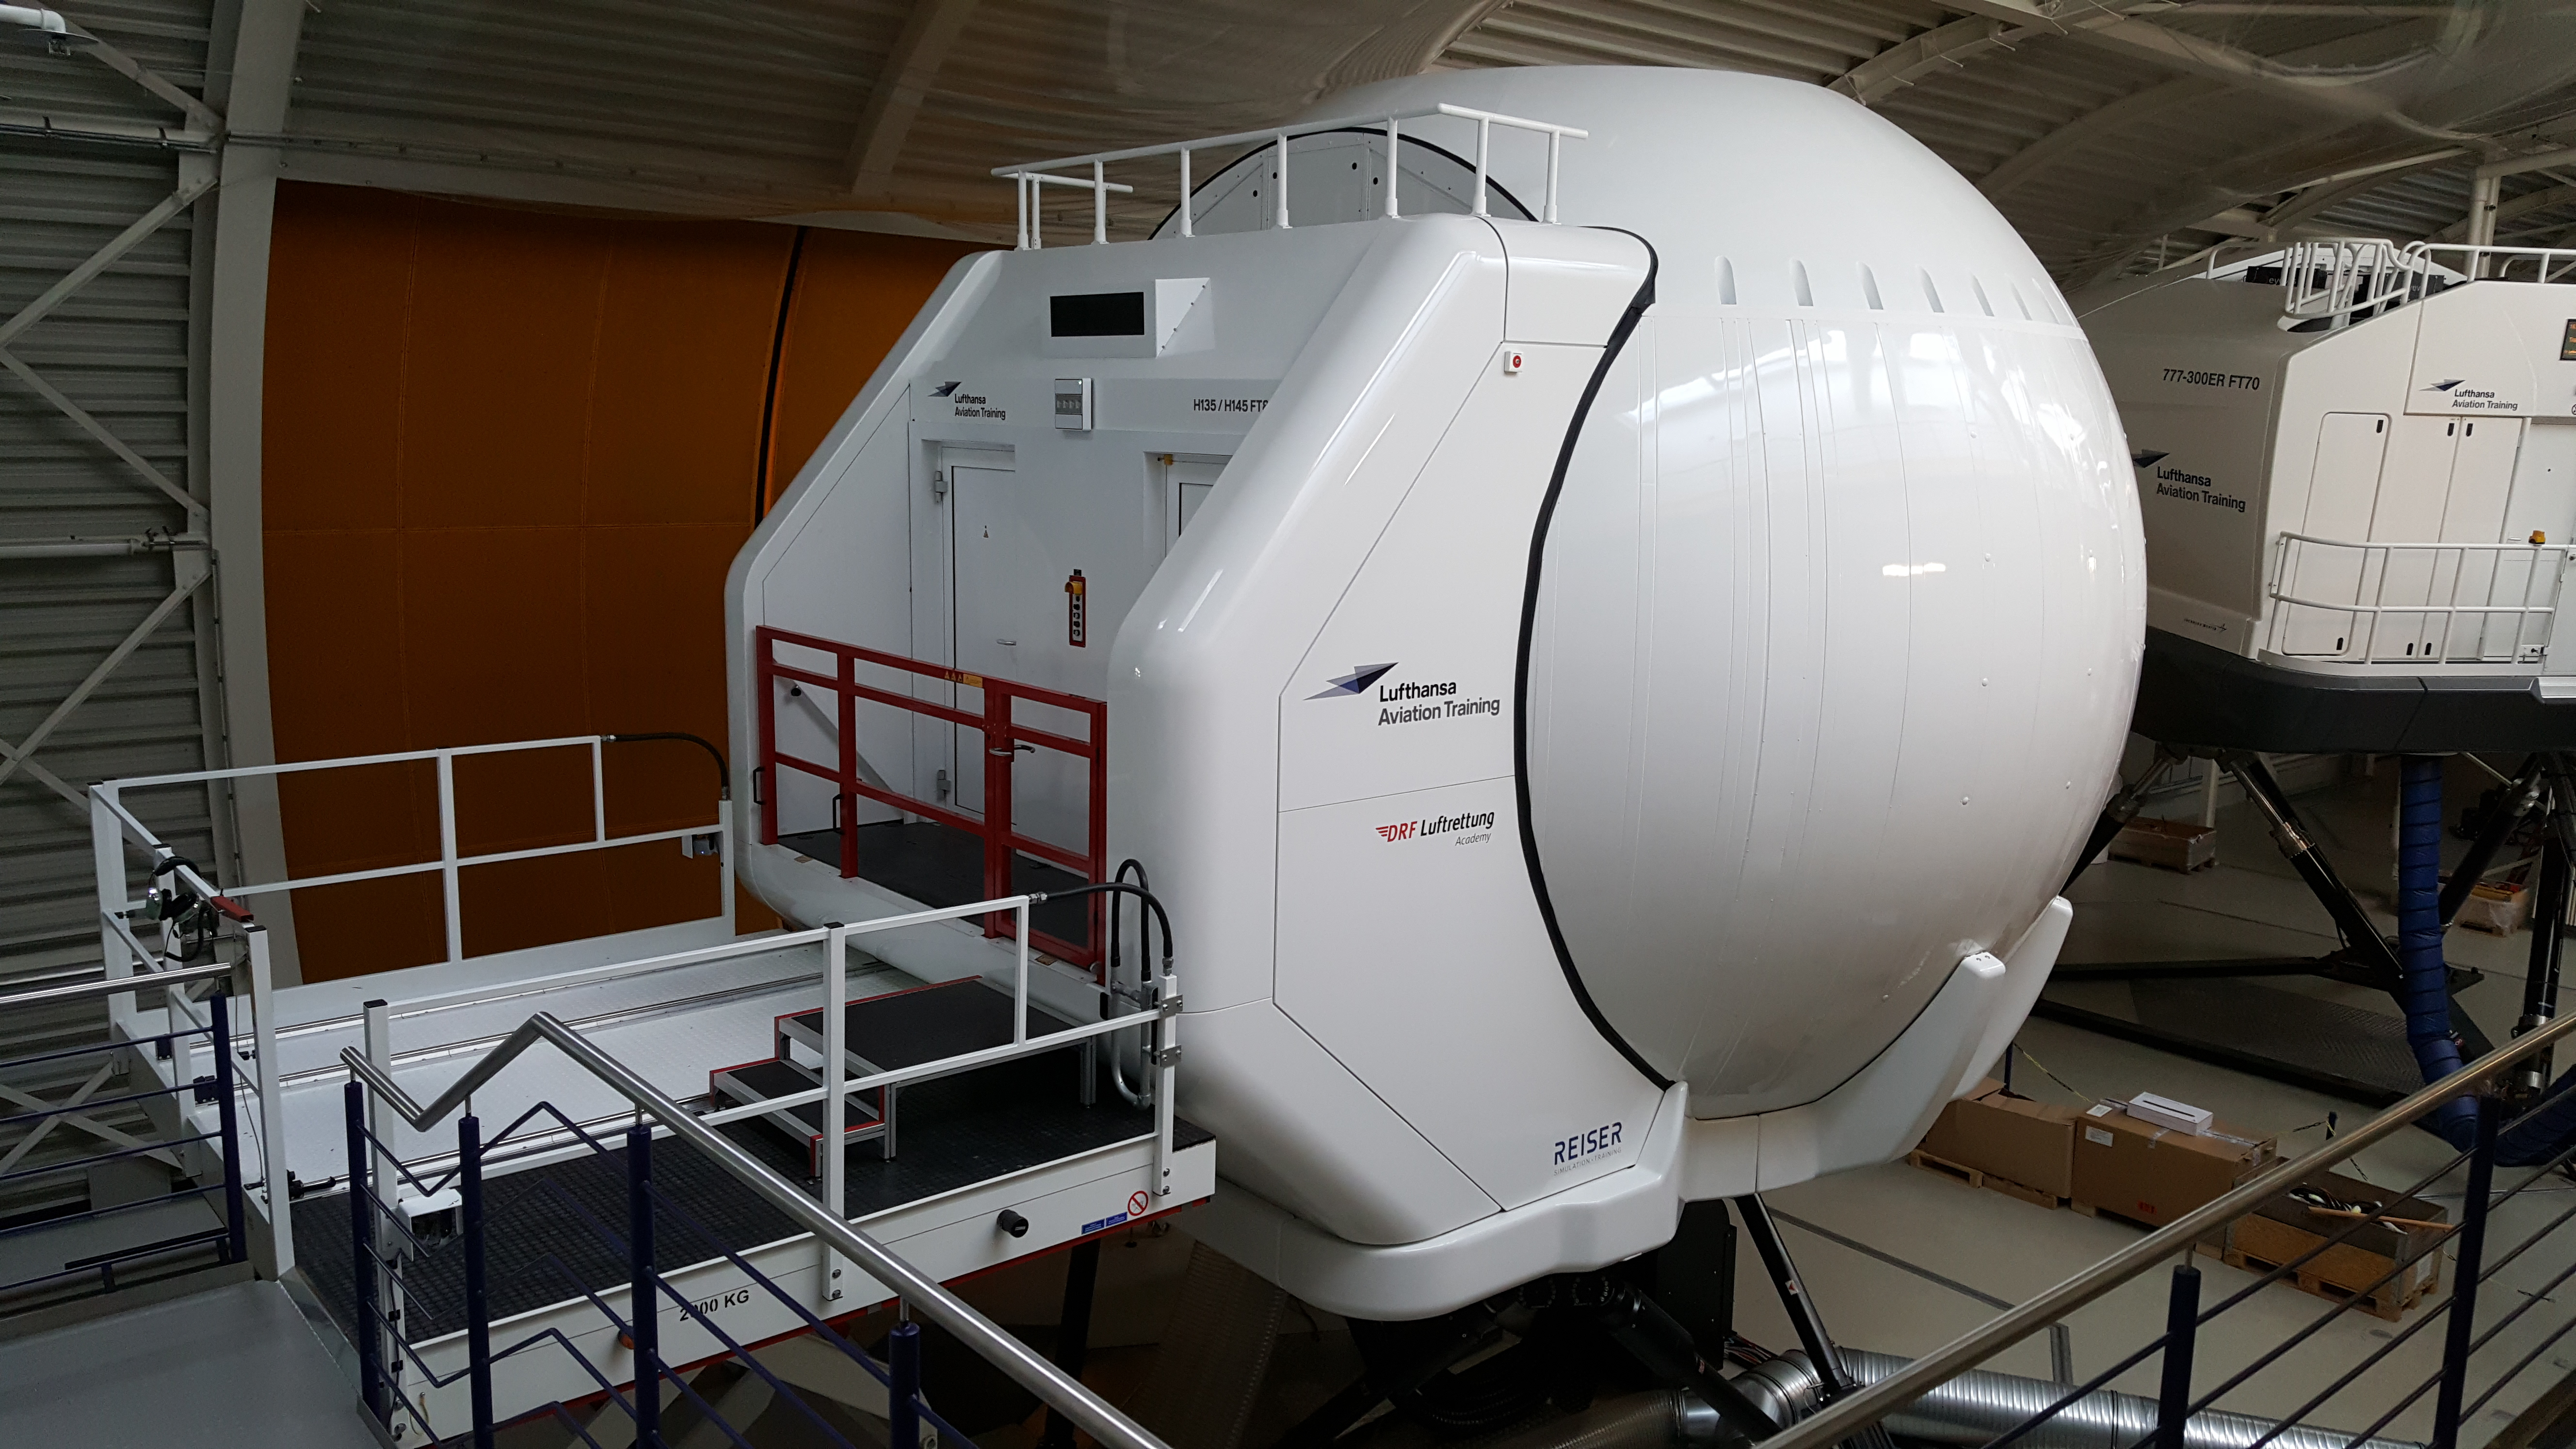 Airbus Helicopter SIM